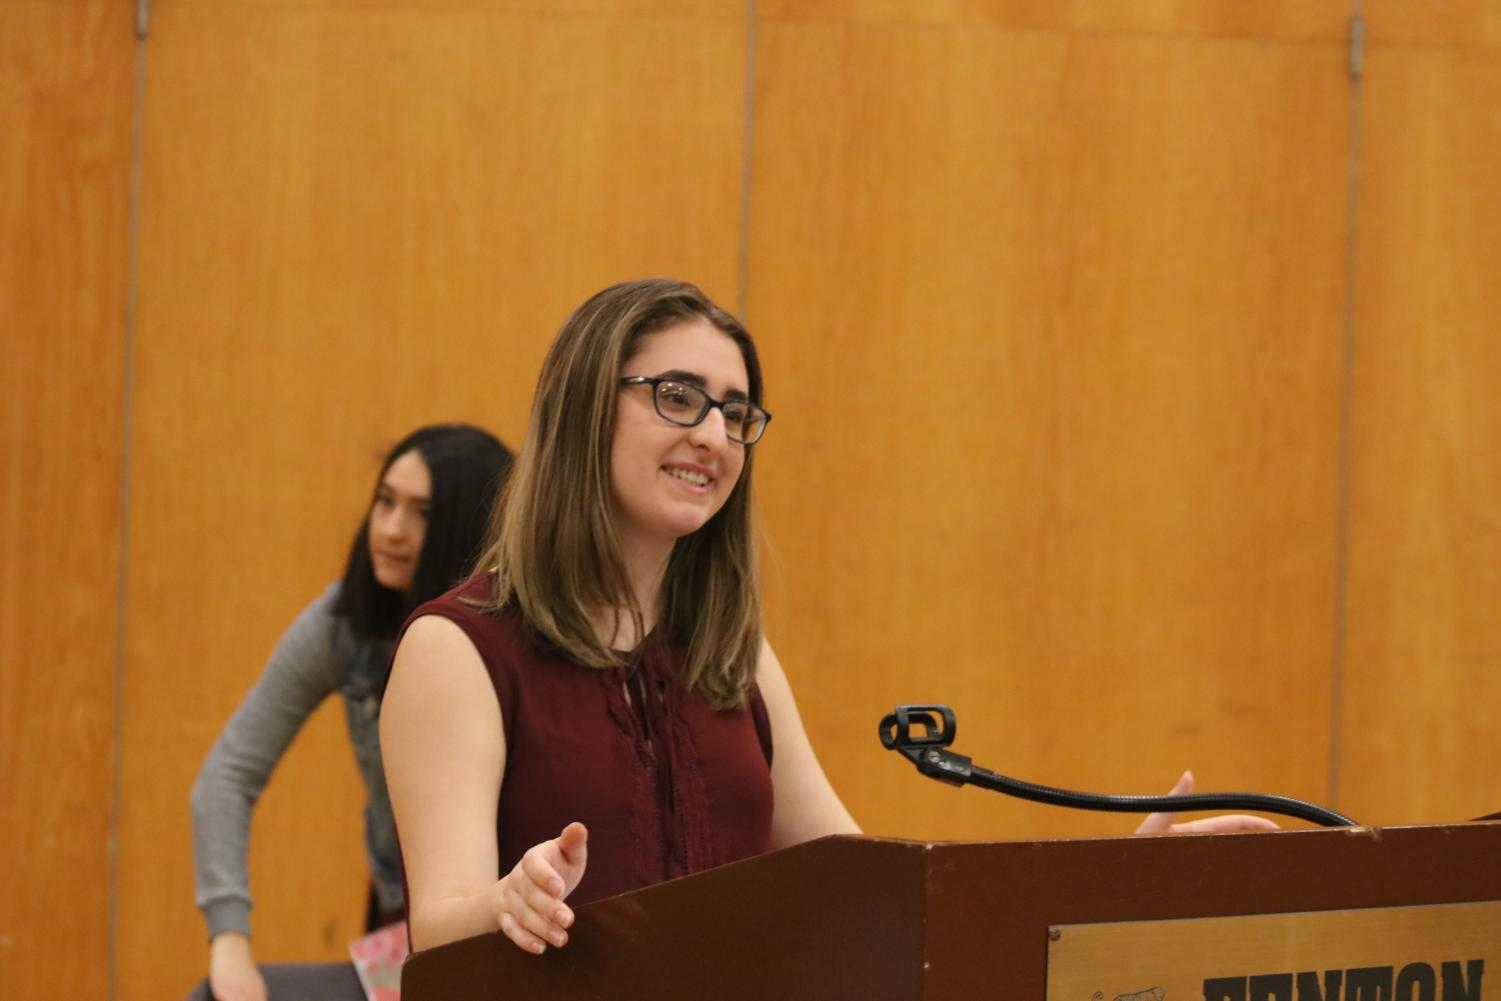 Honoring victims of gun violence, junior Ellie Bennett and other students gathered in the gym for the Parkland Memorial Ceremony on March 14.